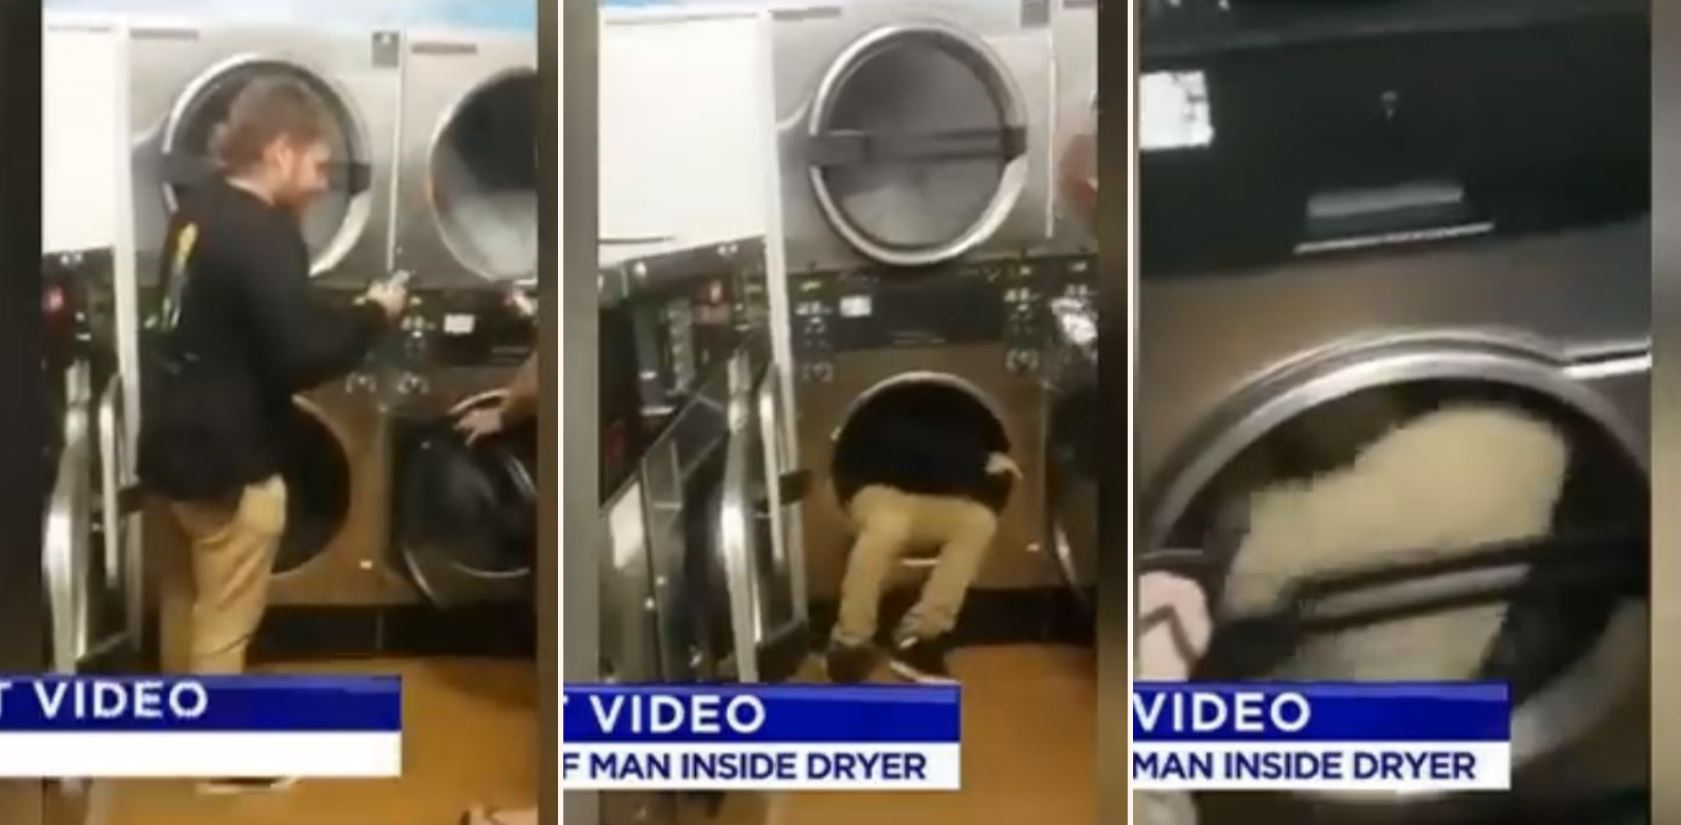 Aussie bloke goes for a spin in a laundromat dryer